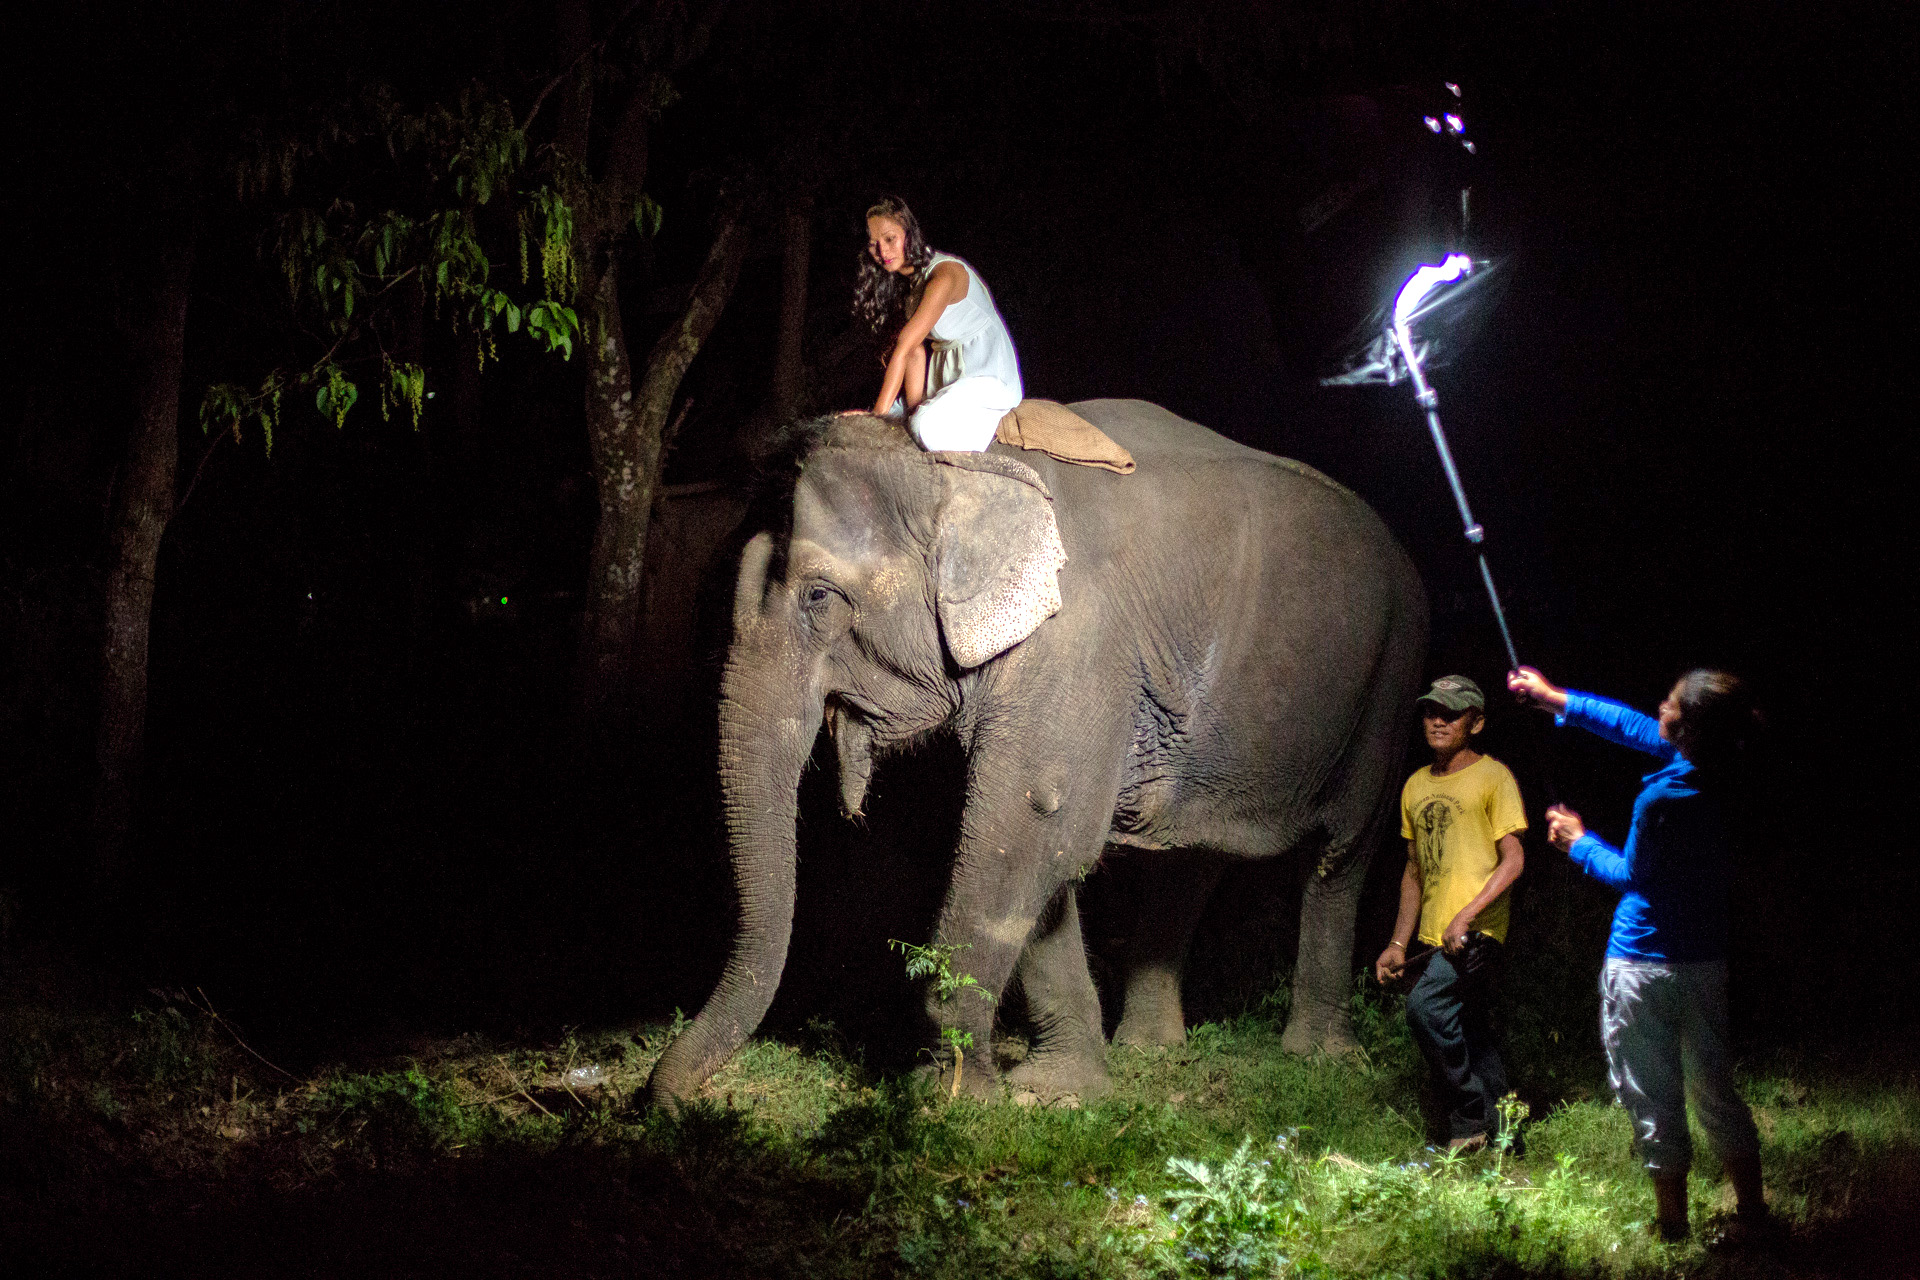 Behind the scenes of the shoot. Samjhana lighting the scene and our friend taking care of the Elephant.